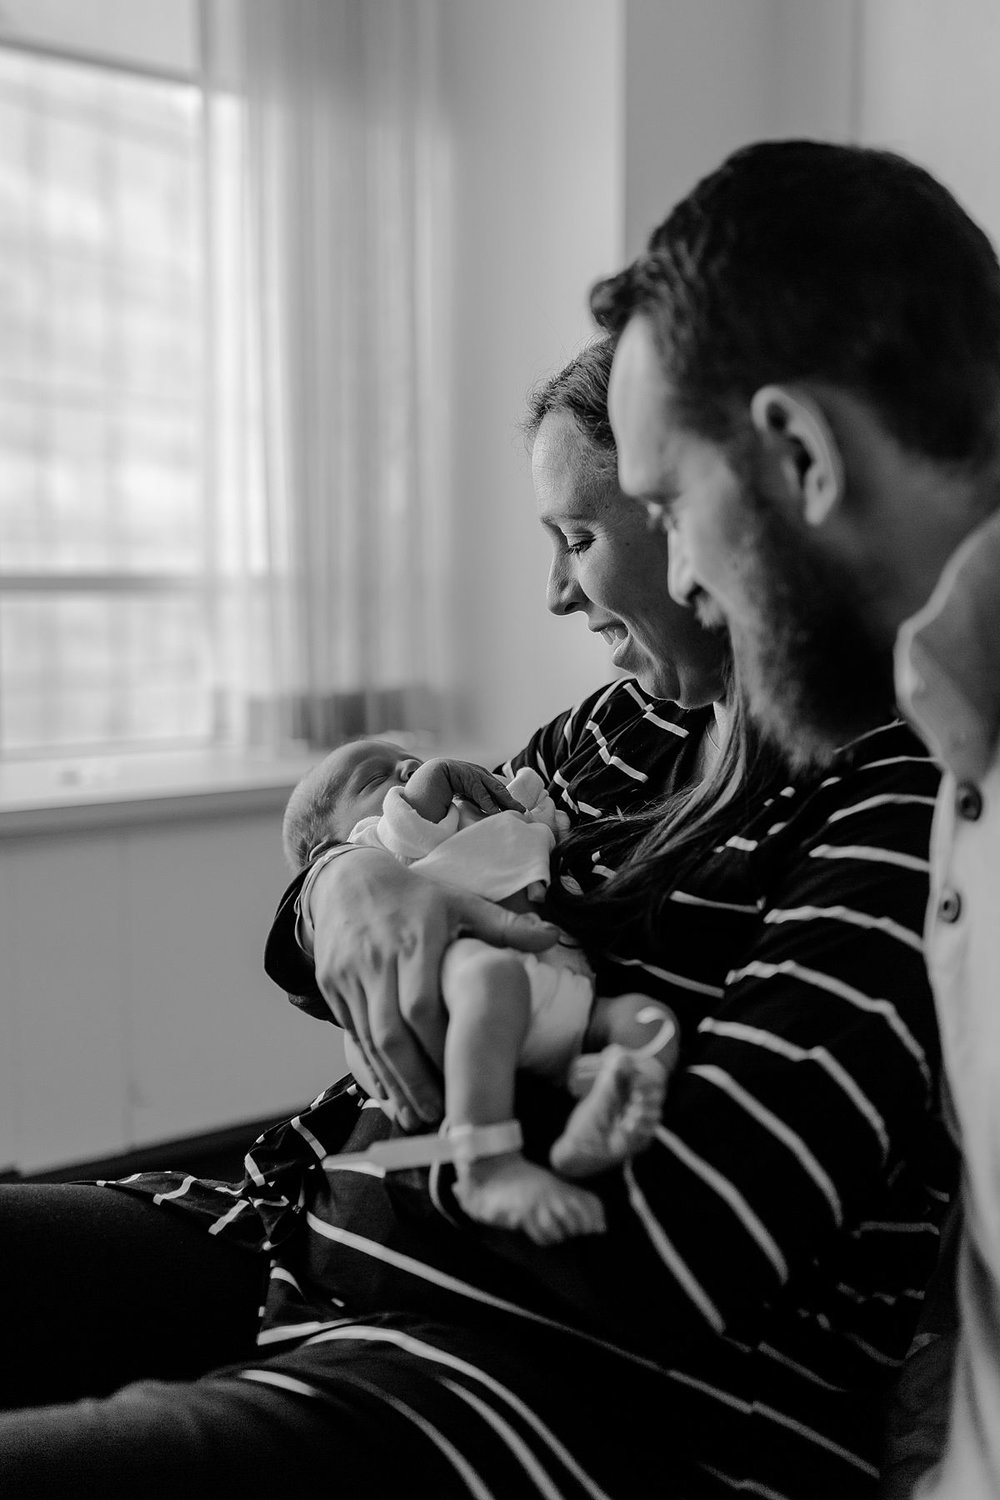 black and white fresh 48 family portrait of mom and dad smiling at newborn son. photo by nyc family and newborn photographer krystil mcdowall